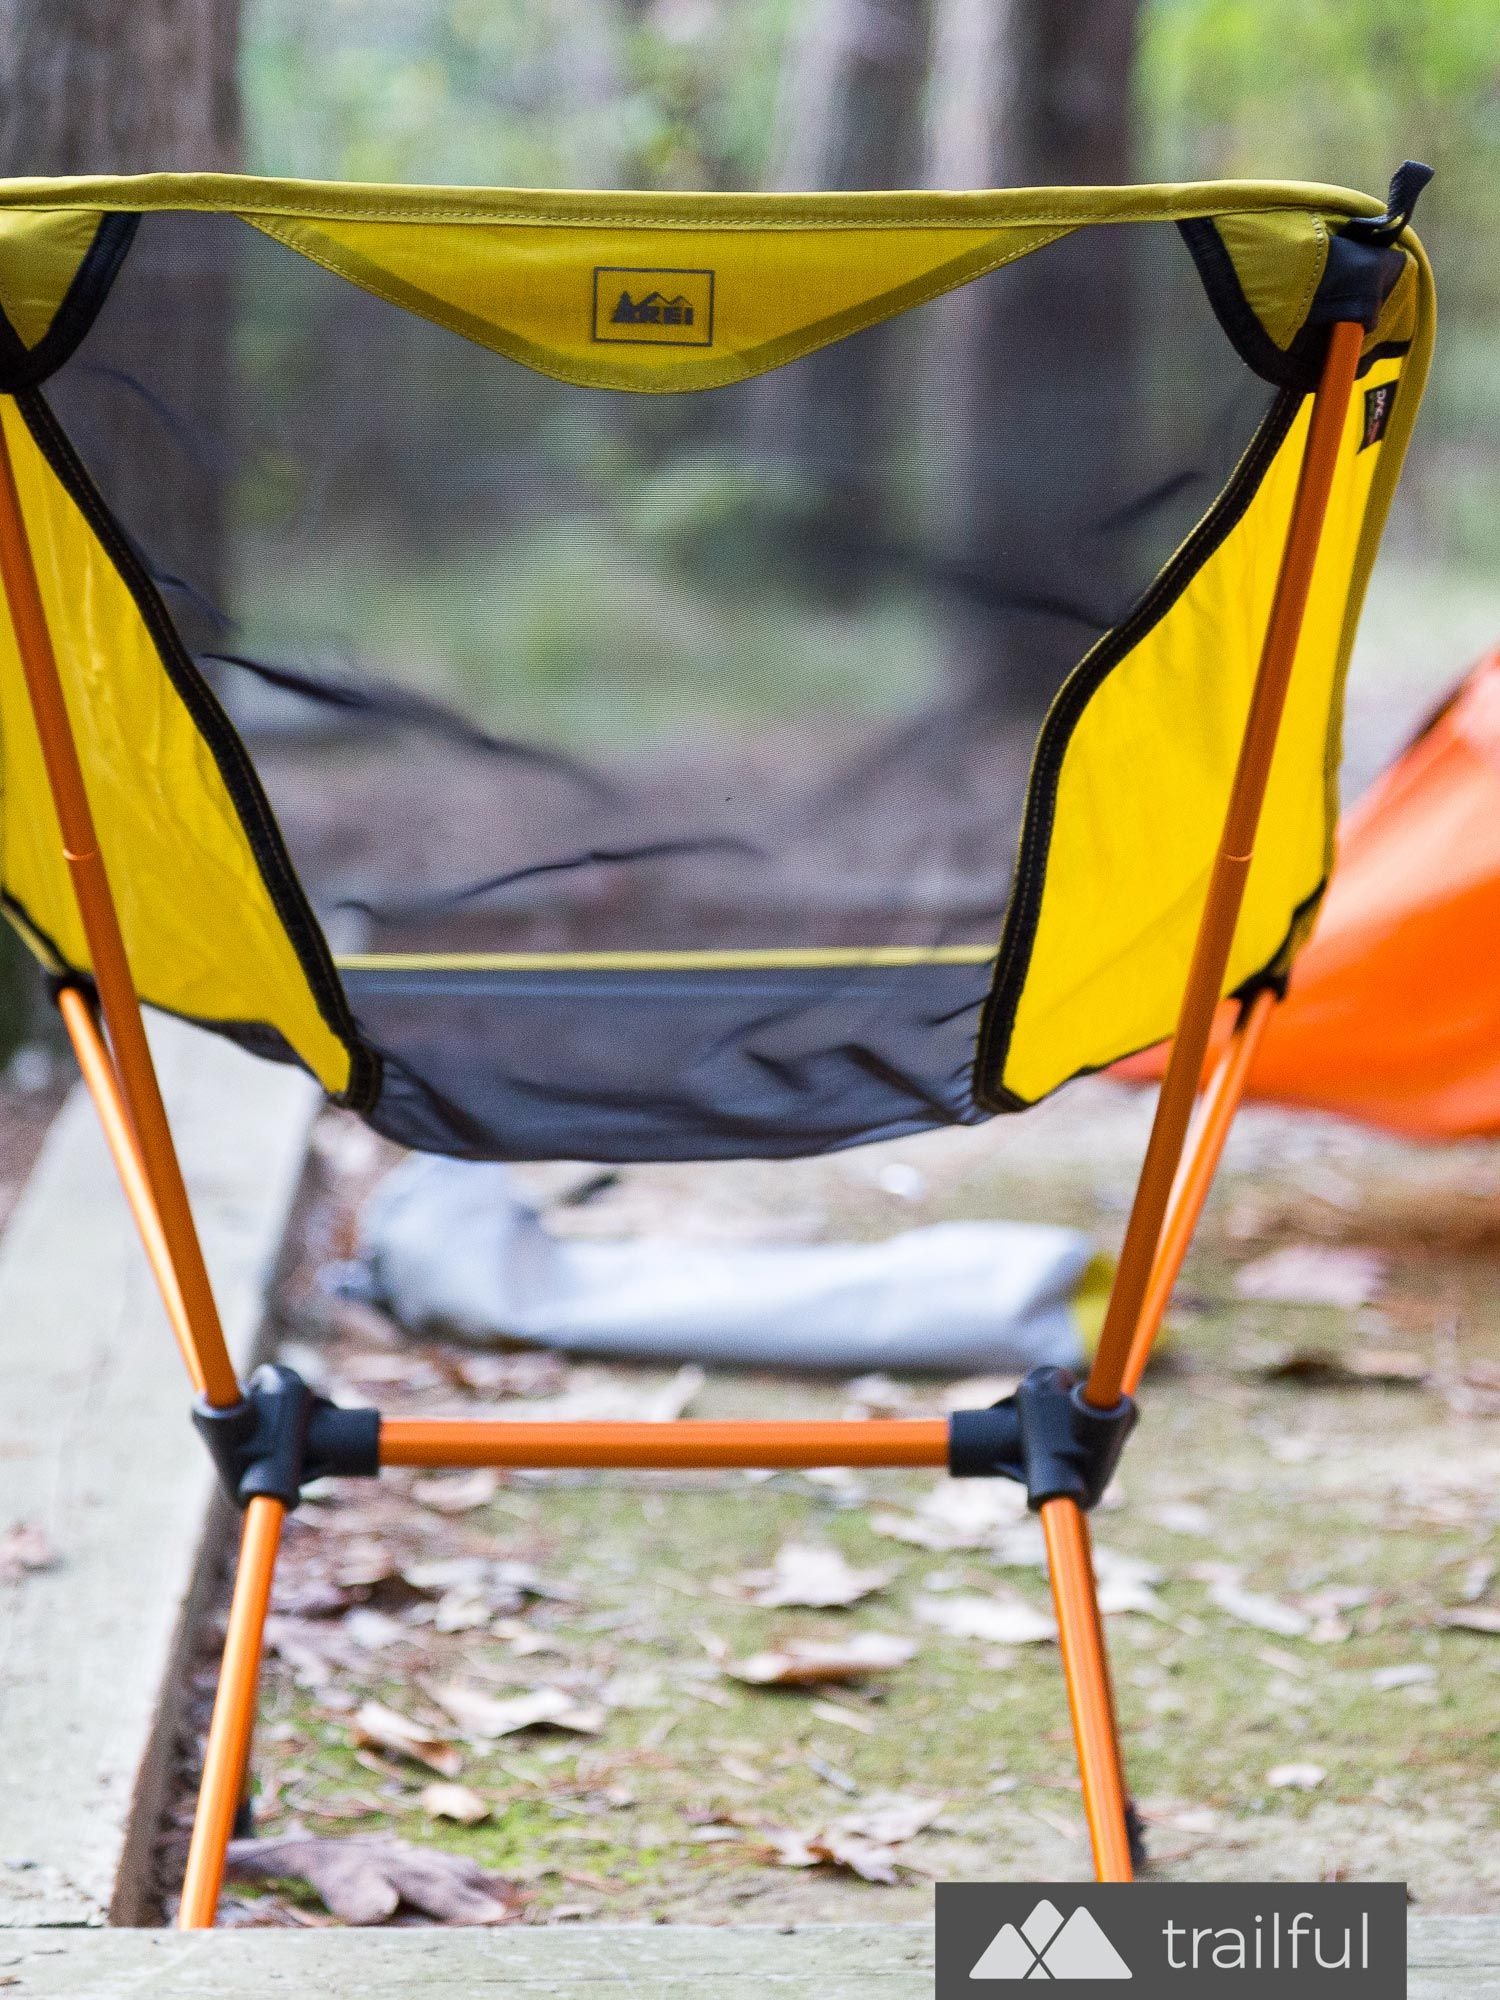 Jerry chair backpacking - Our Favorite Lightweight Backpacking Chairs And Camp Furniture The Rei Flexlite Chair Is Ultralight And